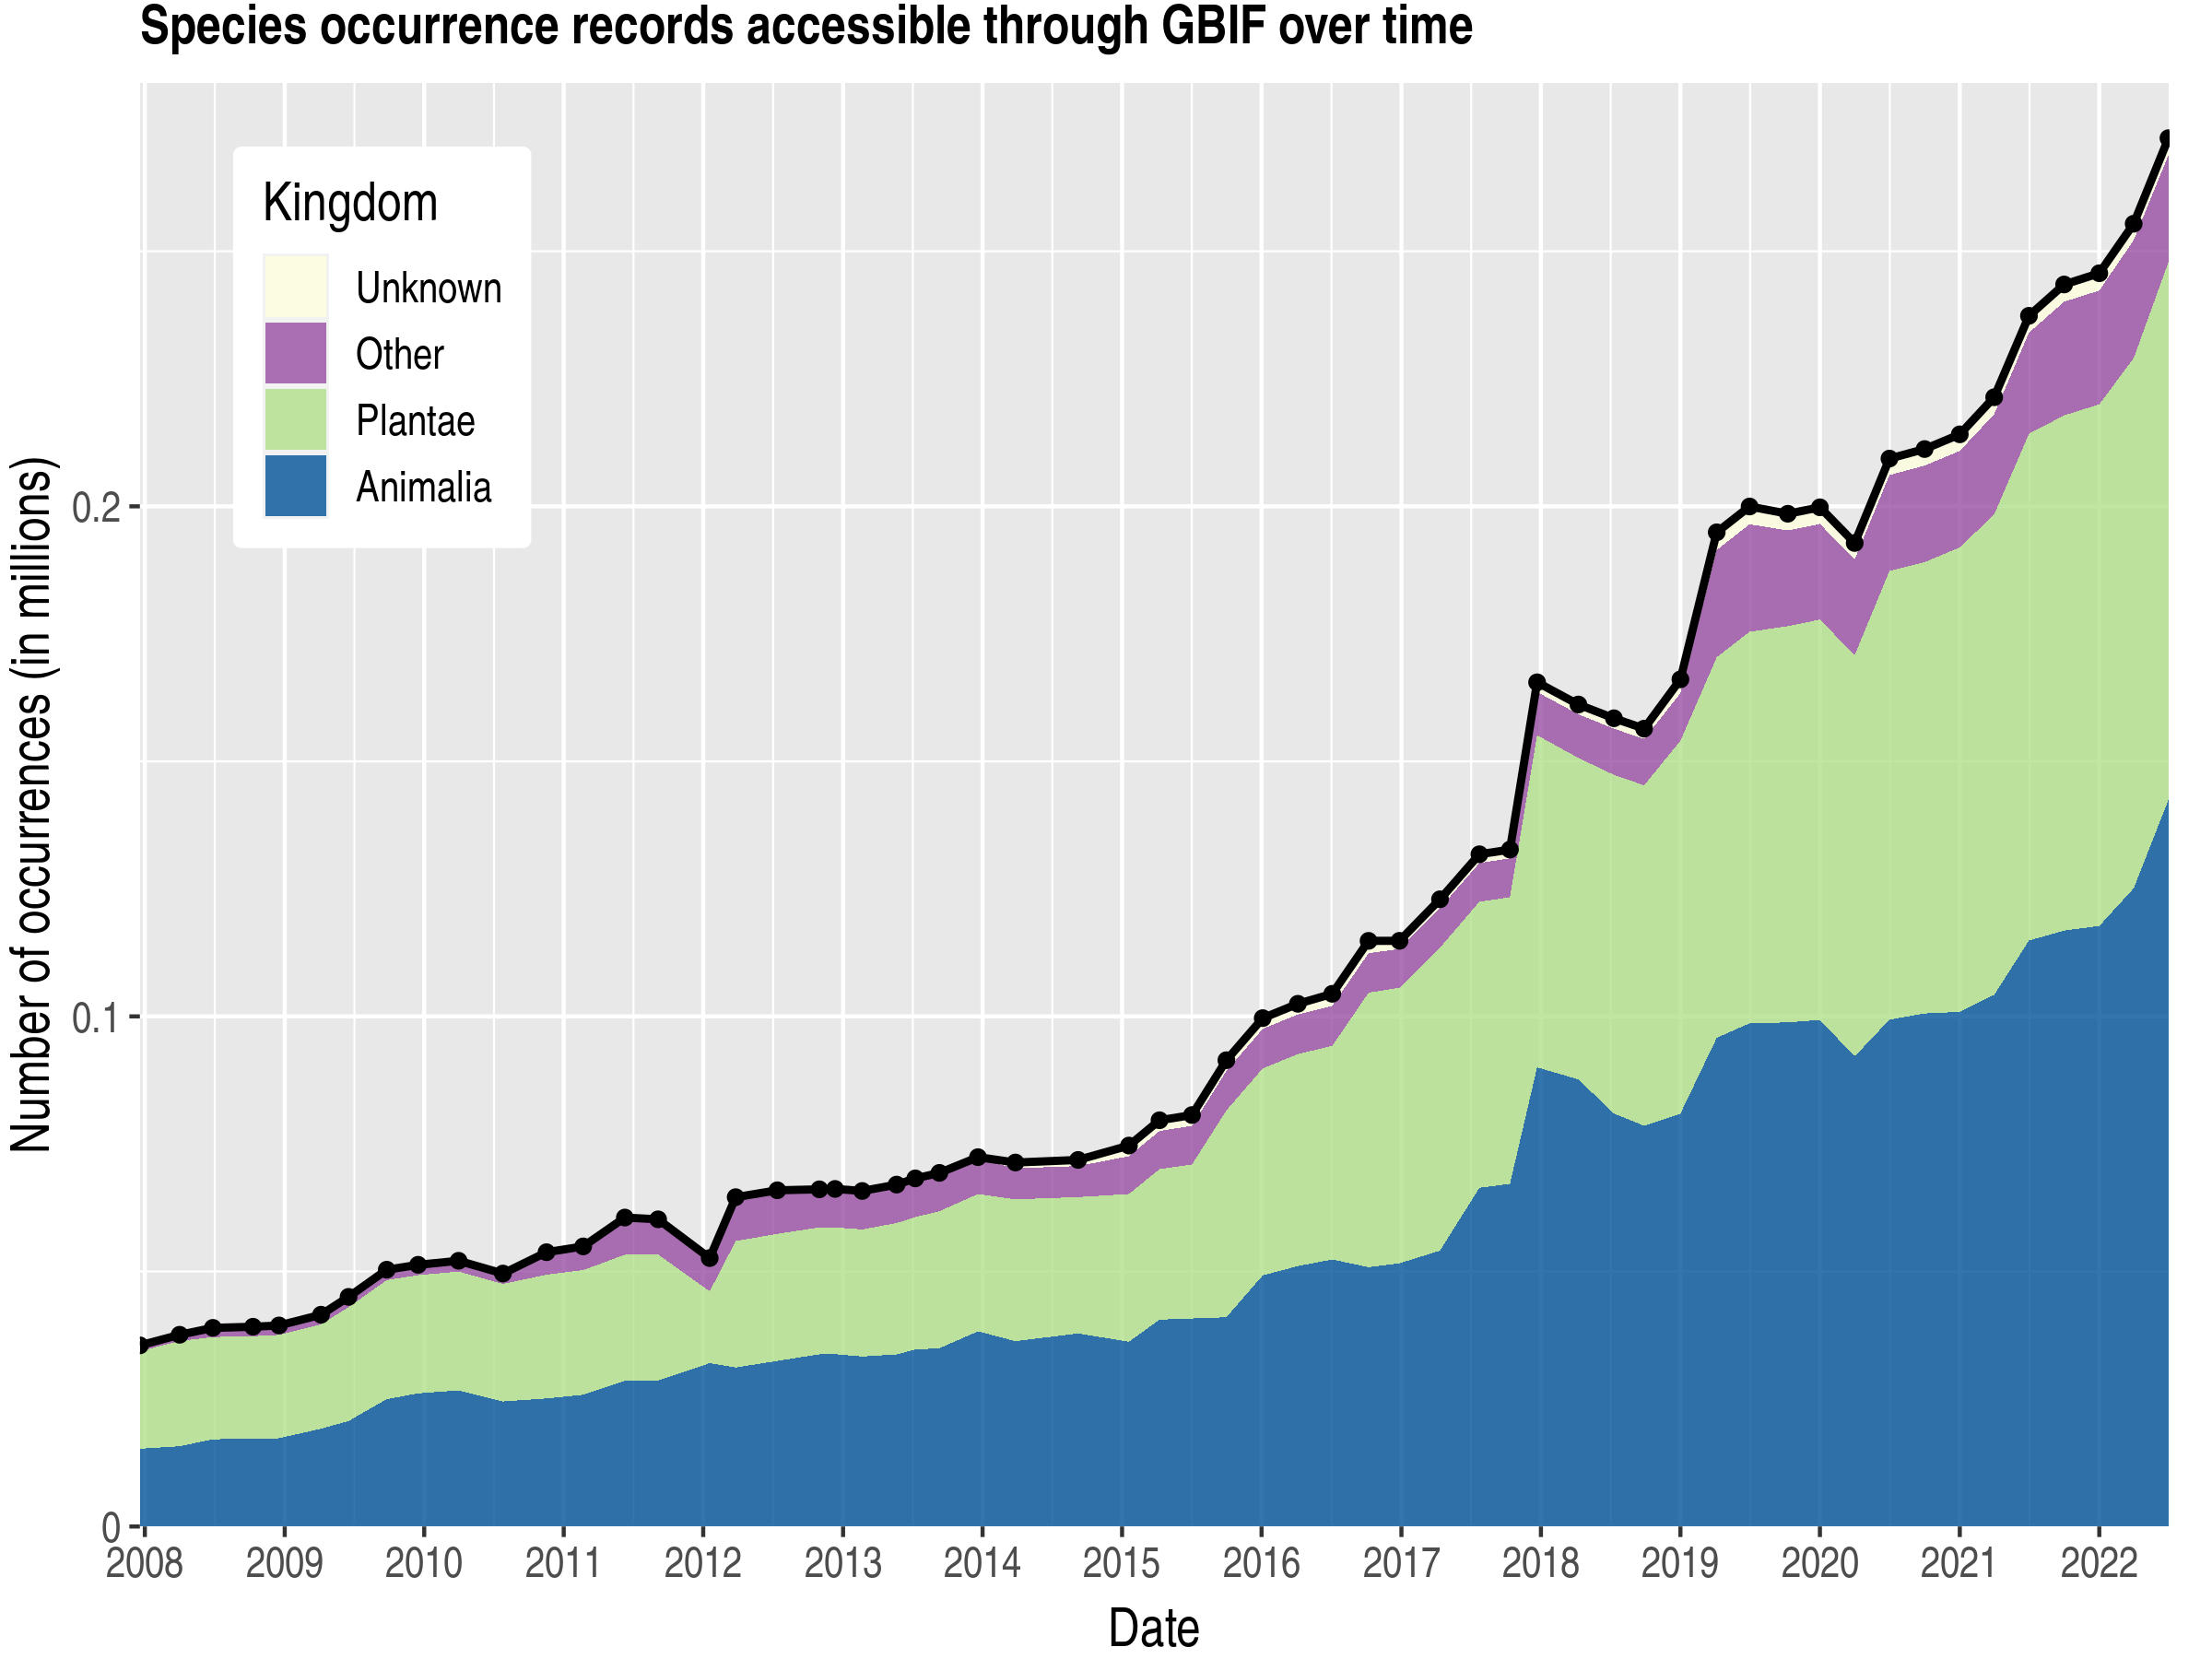 Data trend of records by kingdom about Algeria